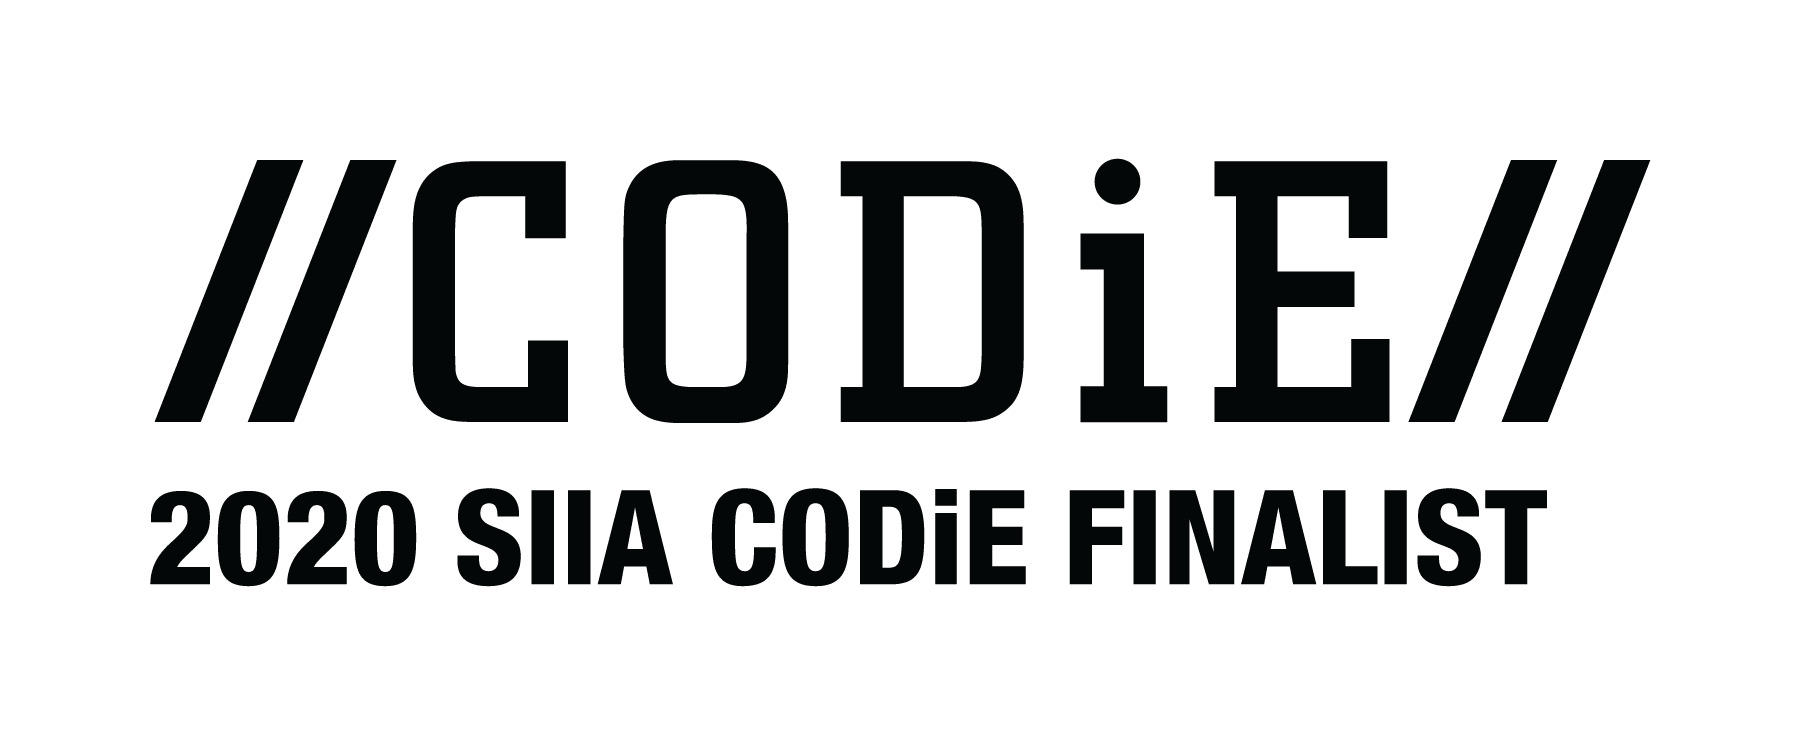 goLance Named SIIA Business Technology Product CODiE Award Finalist for Best Vendor Management System (VMS) Platform